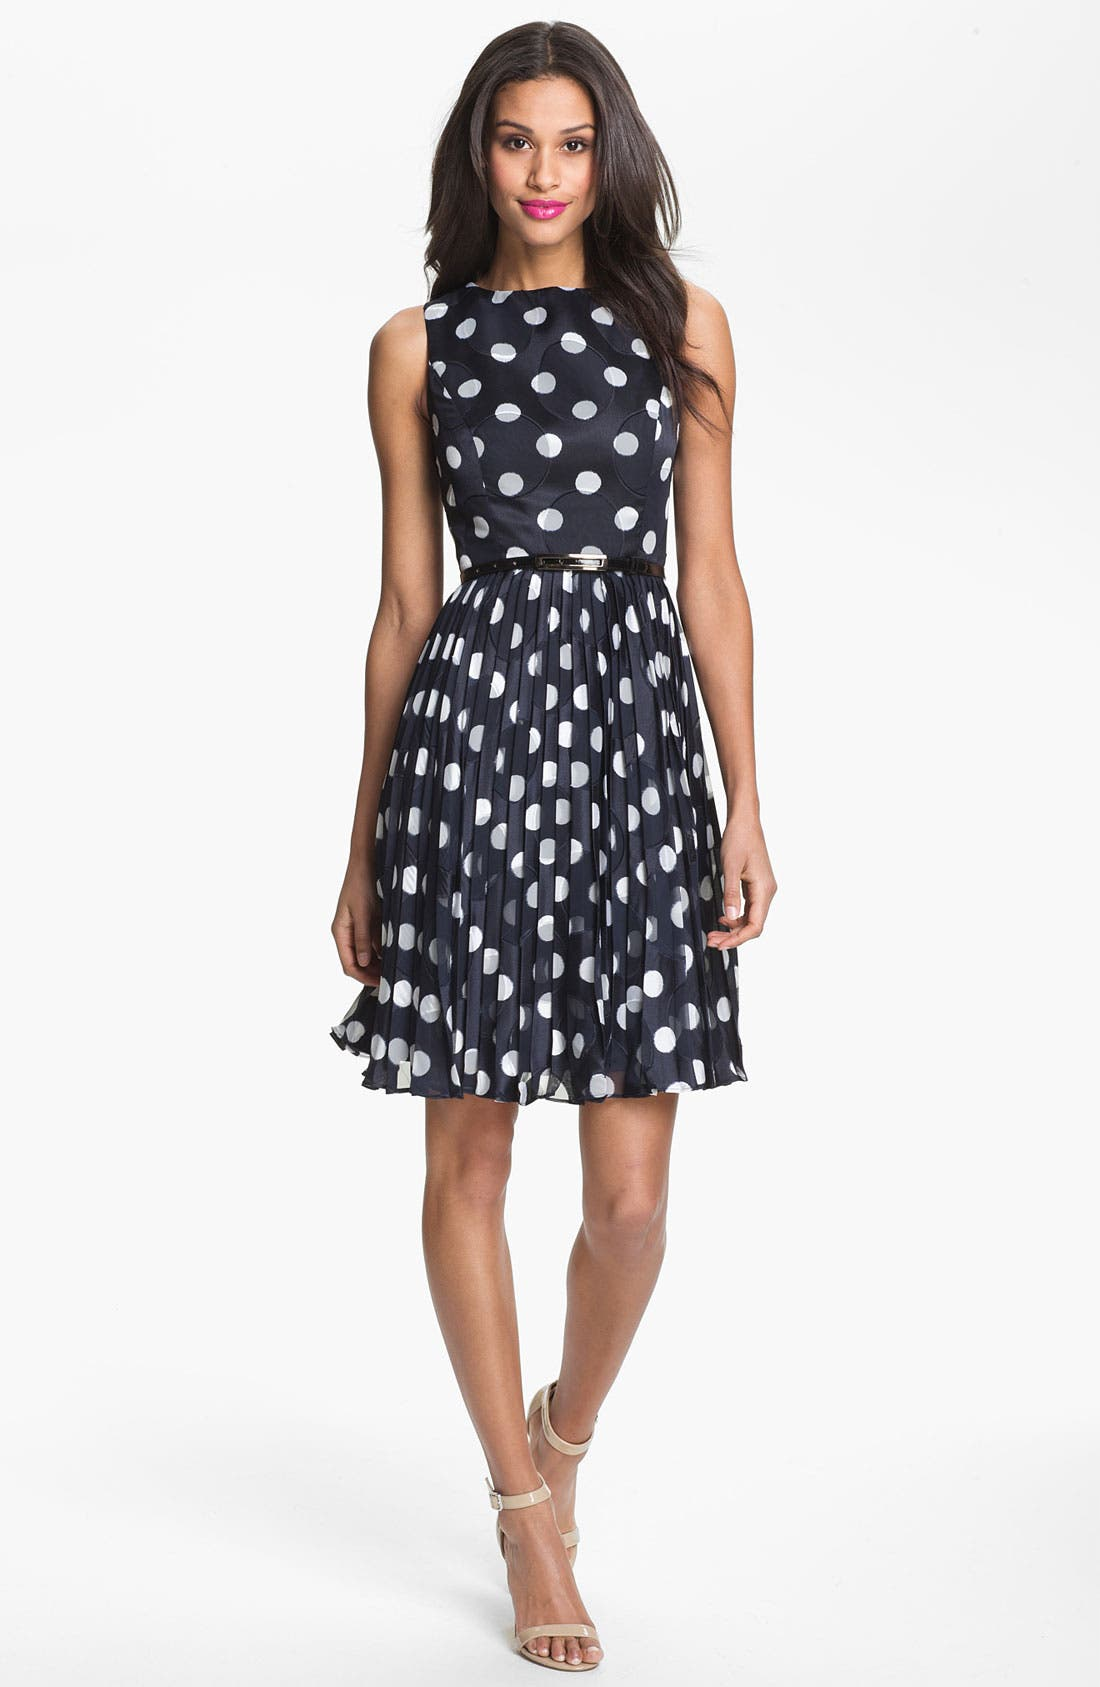 ADRIANNA PAPELL,                             Burnout Polka Dot Fit & Flare Dress,                             Alternate thumbnail 4, color,                             412